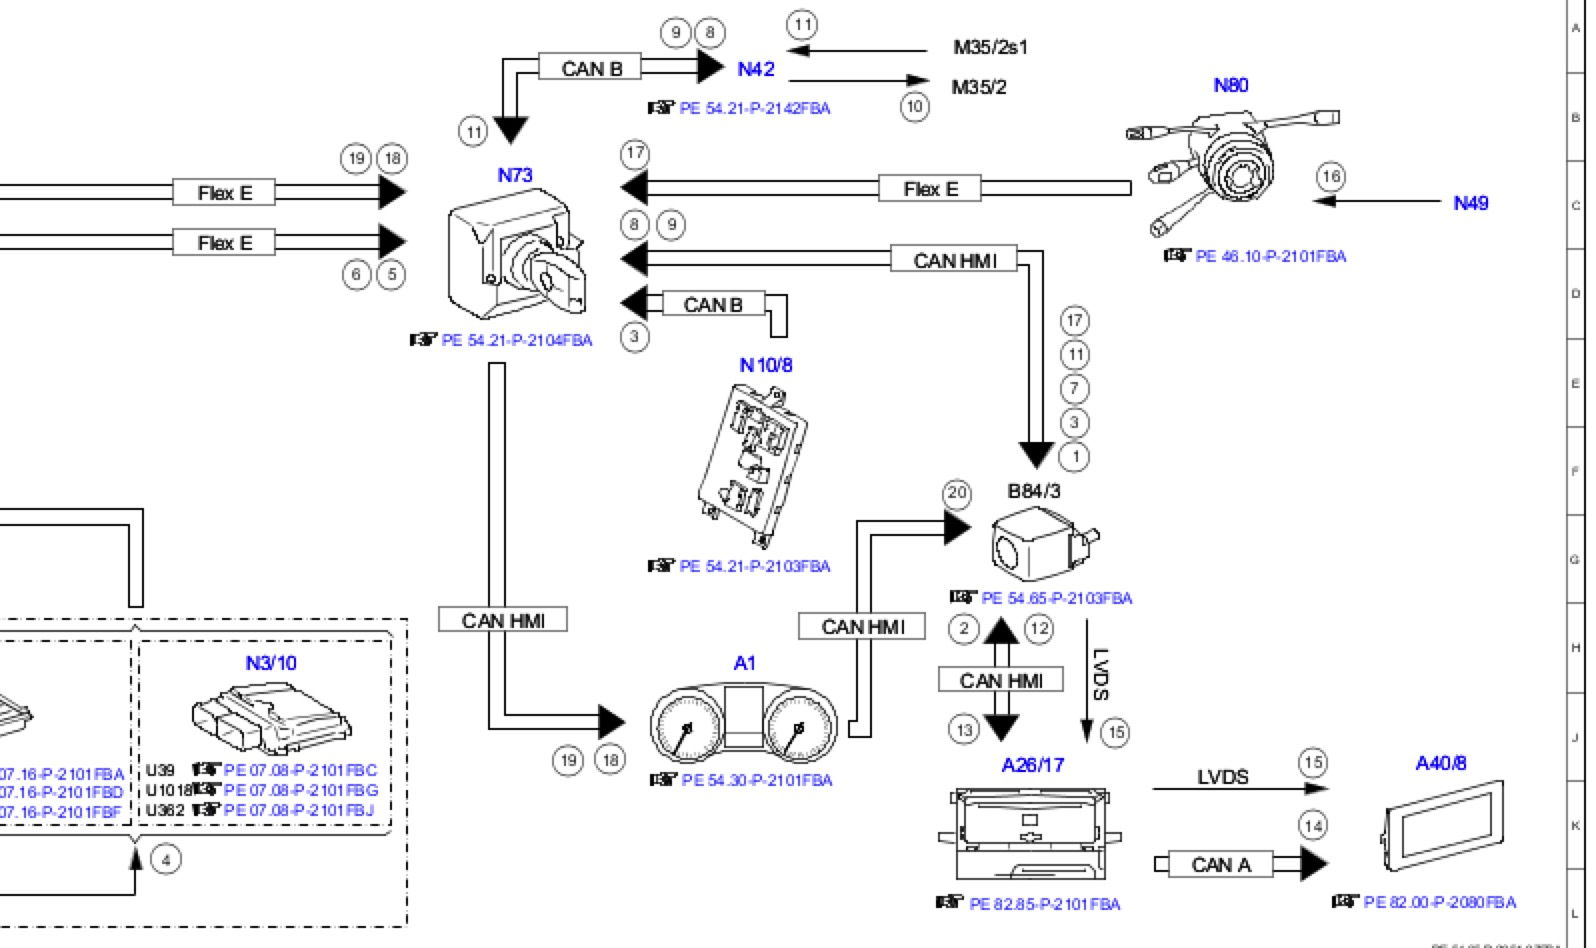 Schaltplan Kia Werksradio I205902995 together with 44s3u 1986 F350 Wiring The Starter Relay Includes Resistor Wire Melted besides 2vapu Turn Signals Not Working 1997 Olds Cutlass Supreme as well 2004 Toyota Camry Engine Diagram in addition Discussion T16264 ds681362. on ford ignition module wiring diagram